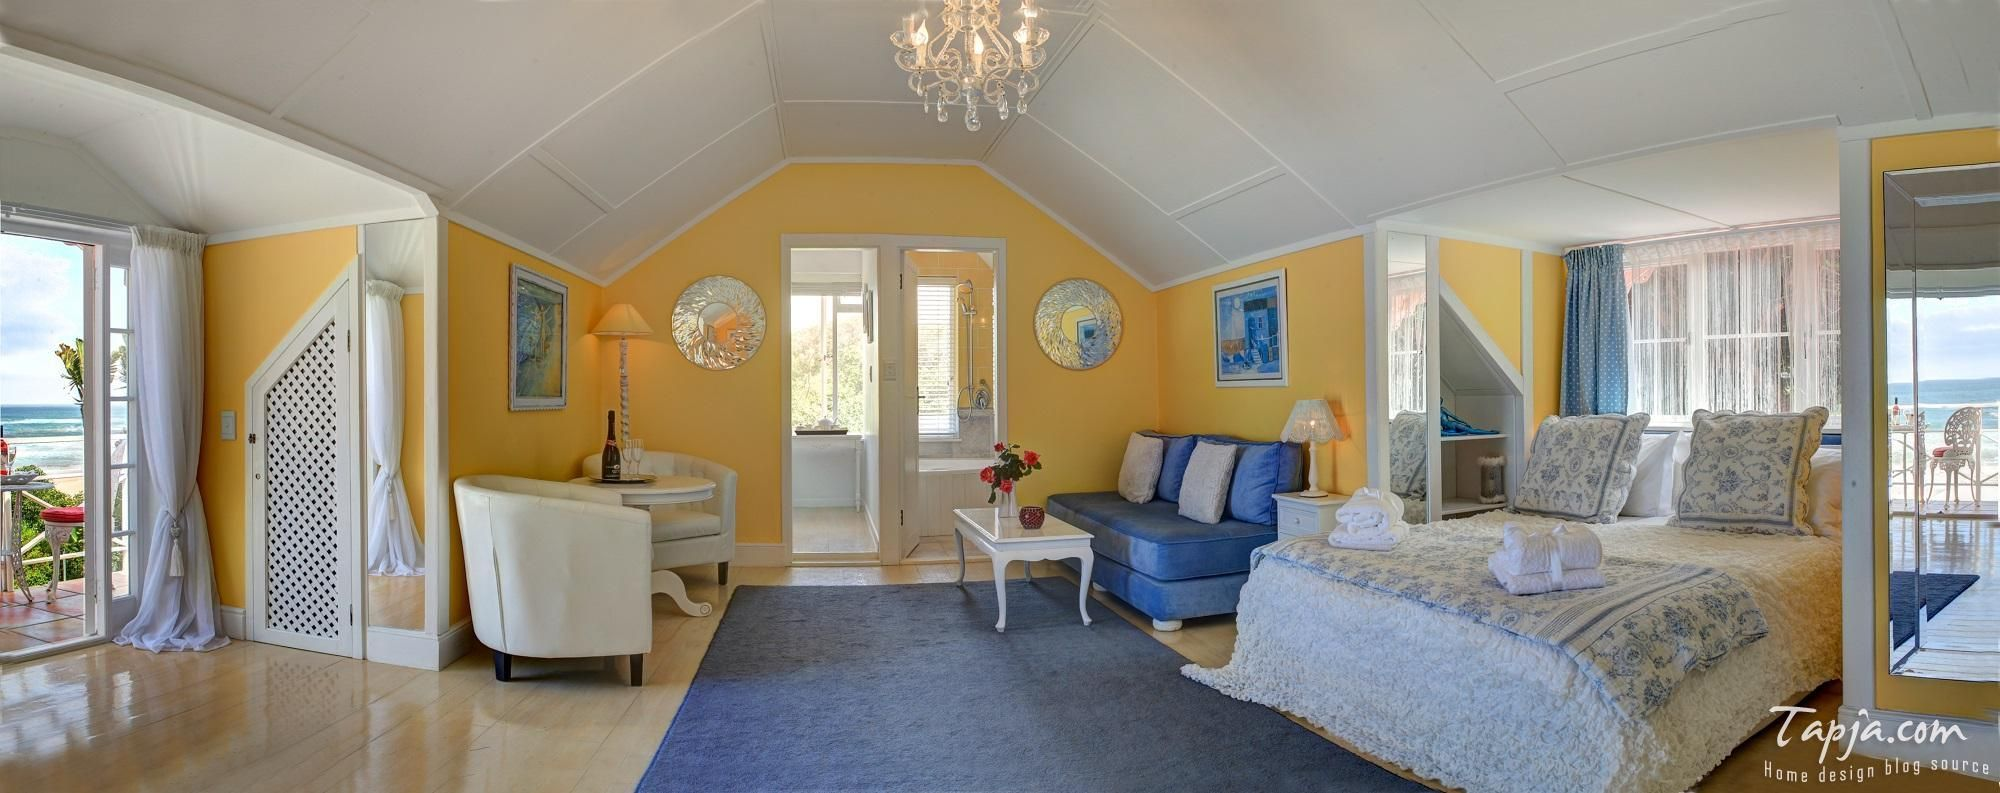 Bedroom Design Modern Attic Decoration With Yellow Paint Wall Color Plus Balcony Face To Beach Small Living Area Blue Sofa And Carpet